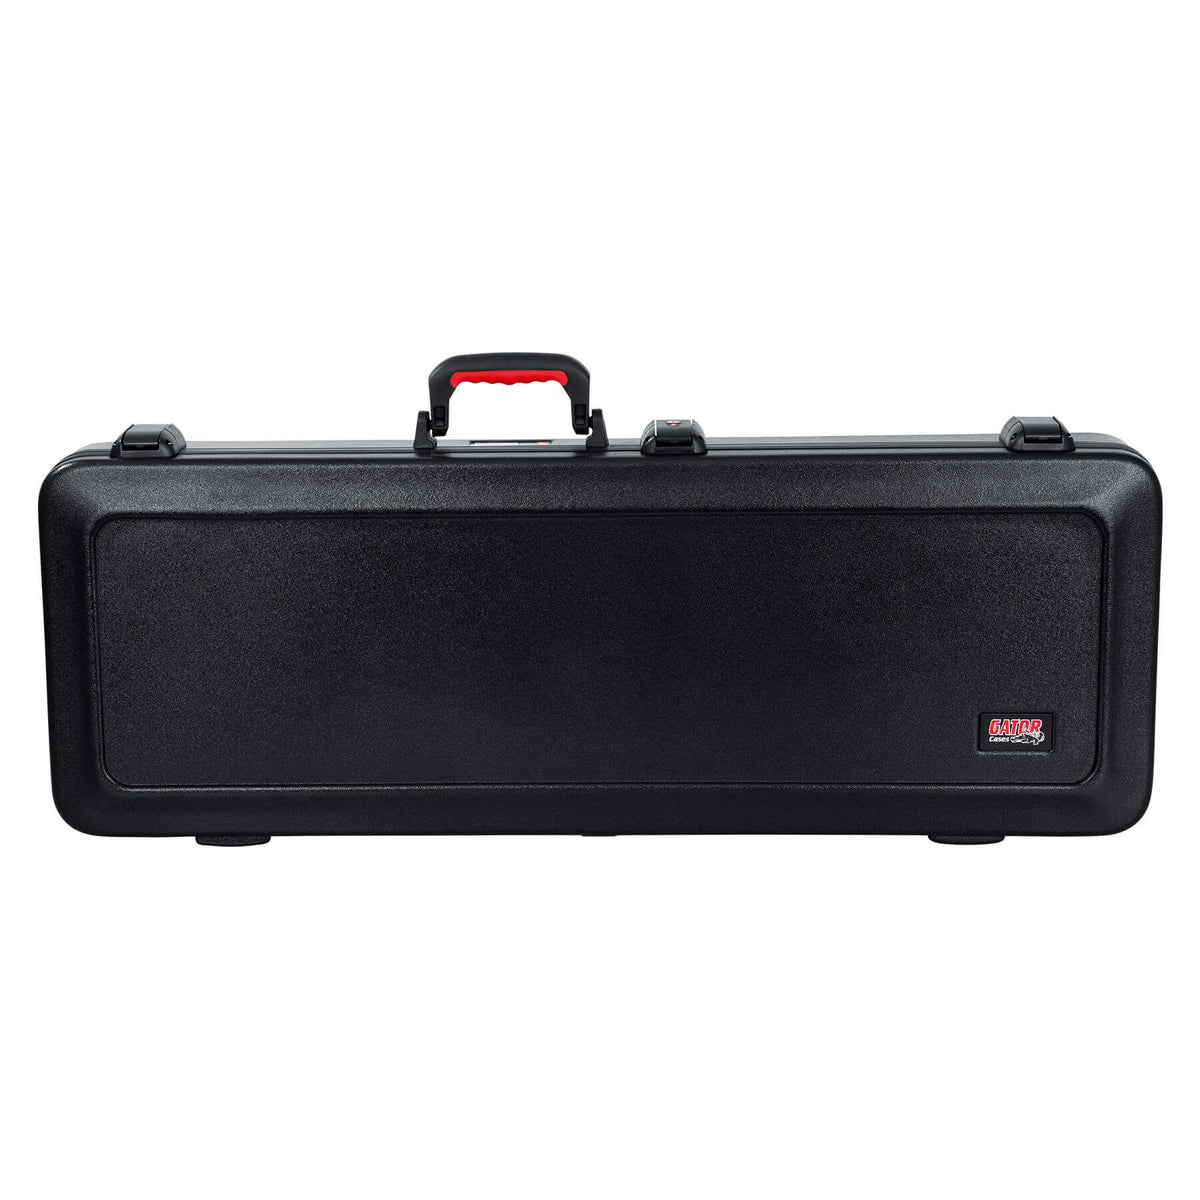 Gator TSA Electric Case fits Fender American Deluxe Series Telecaster